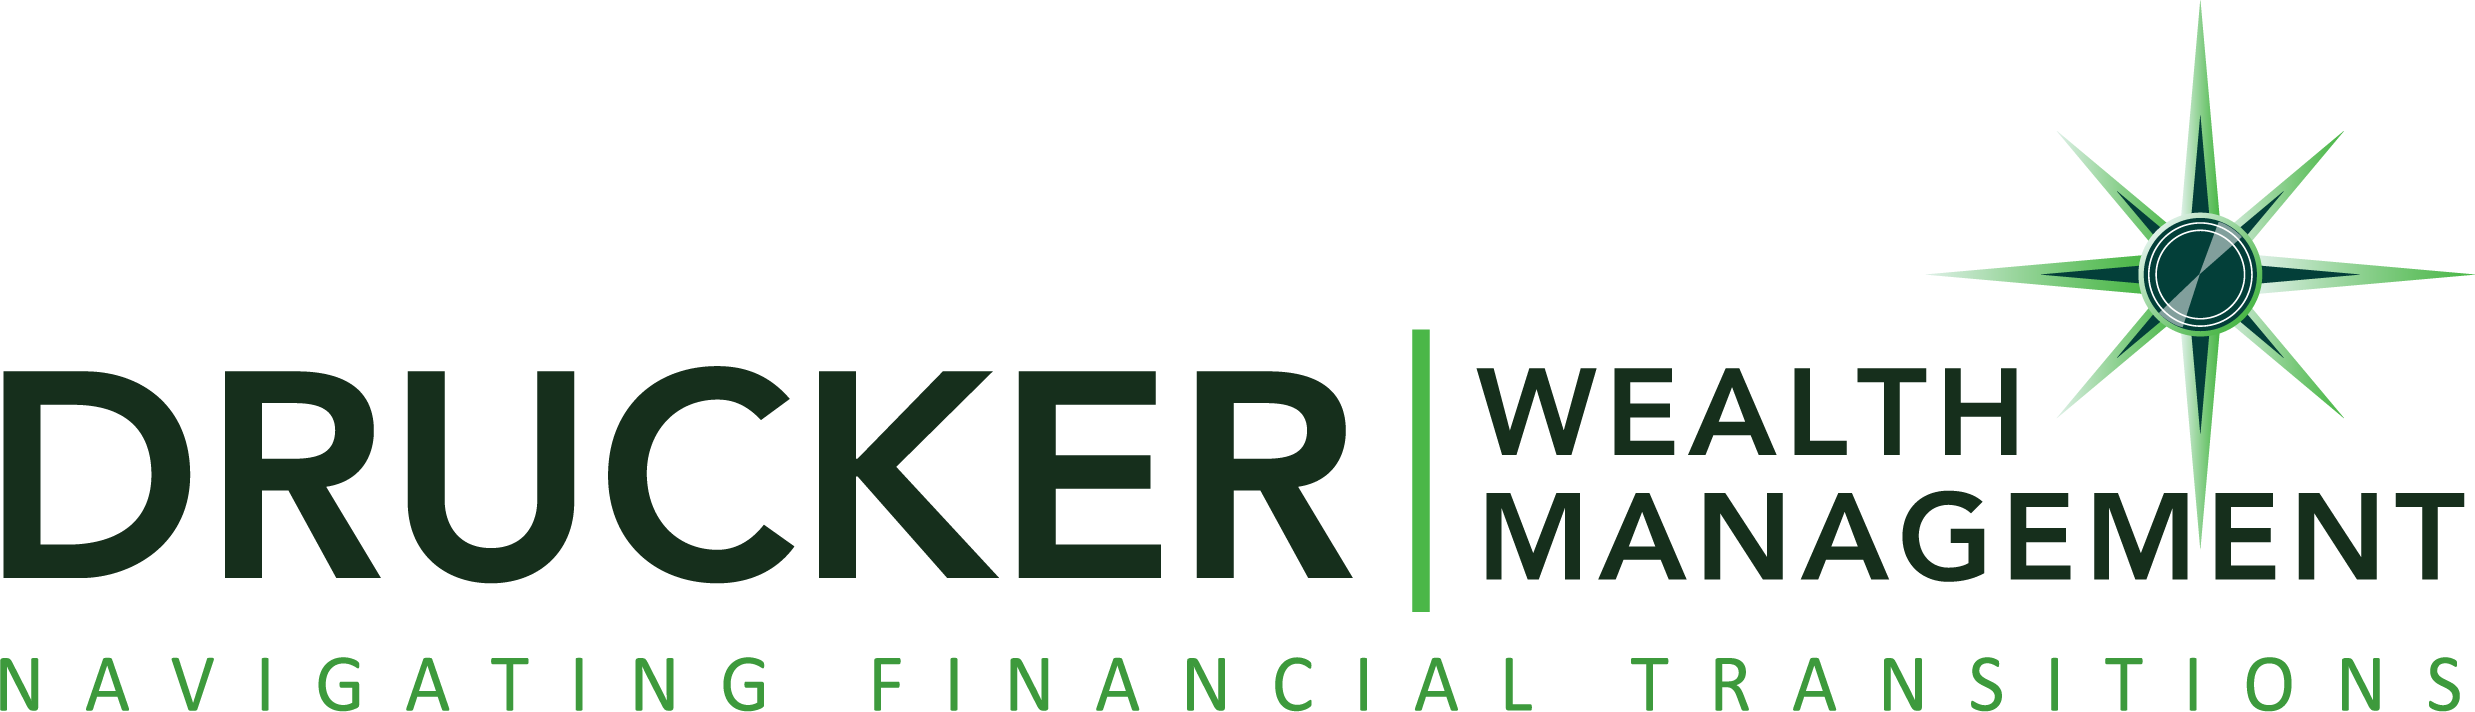 Logo for Drucker Wealth Management